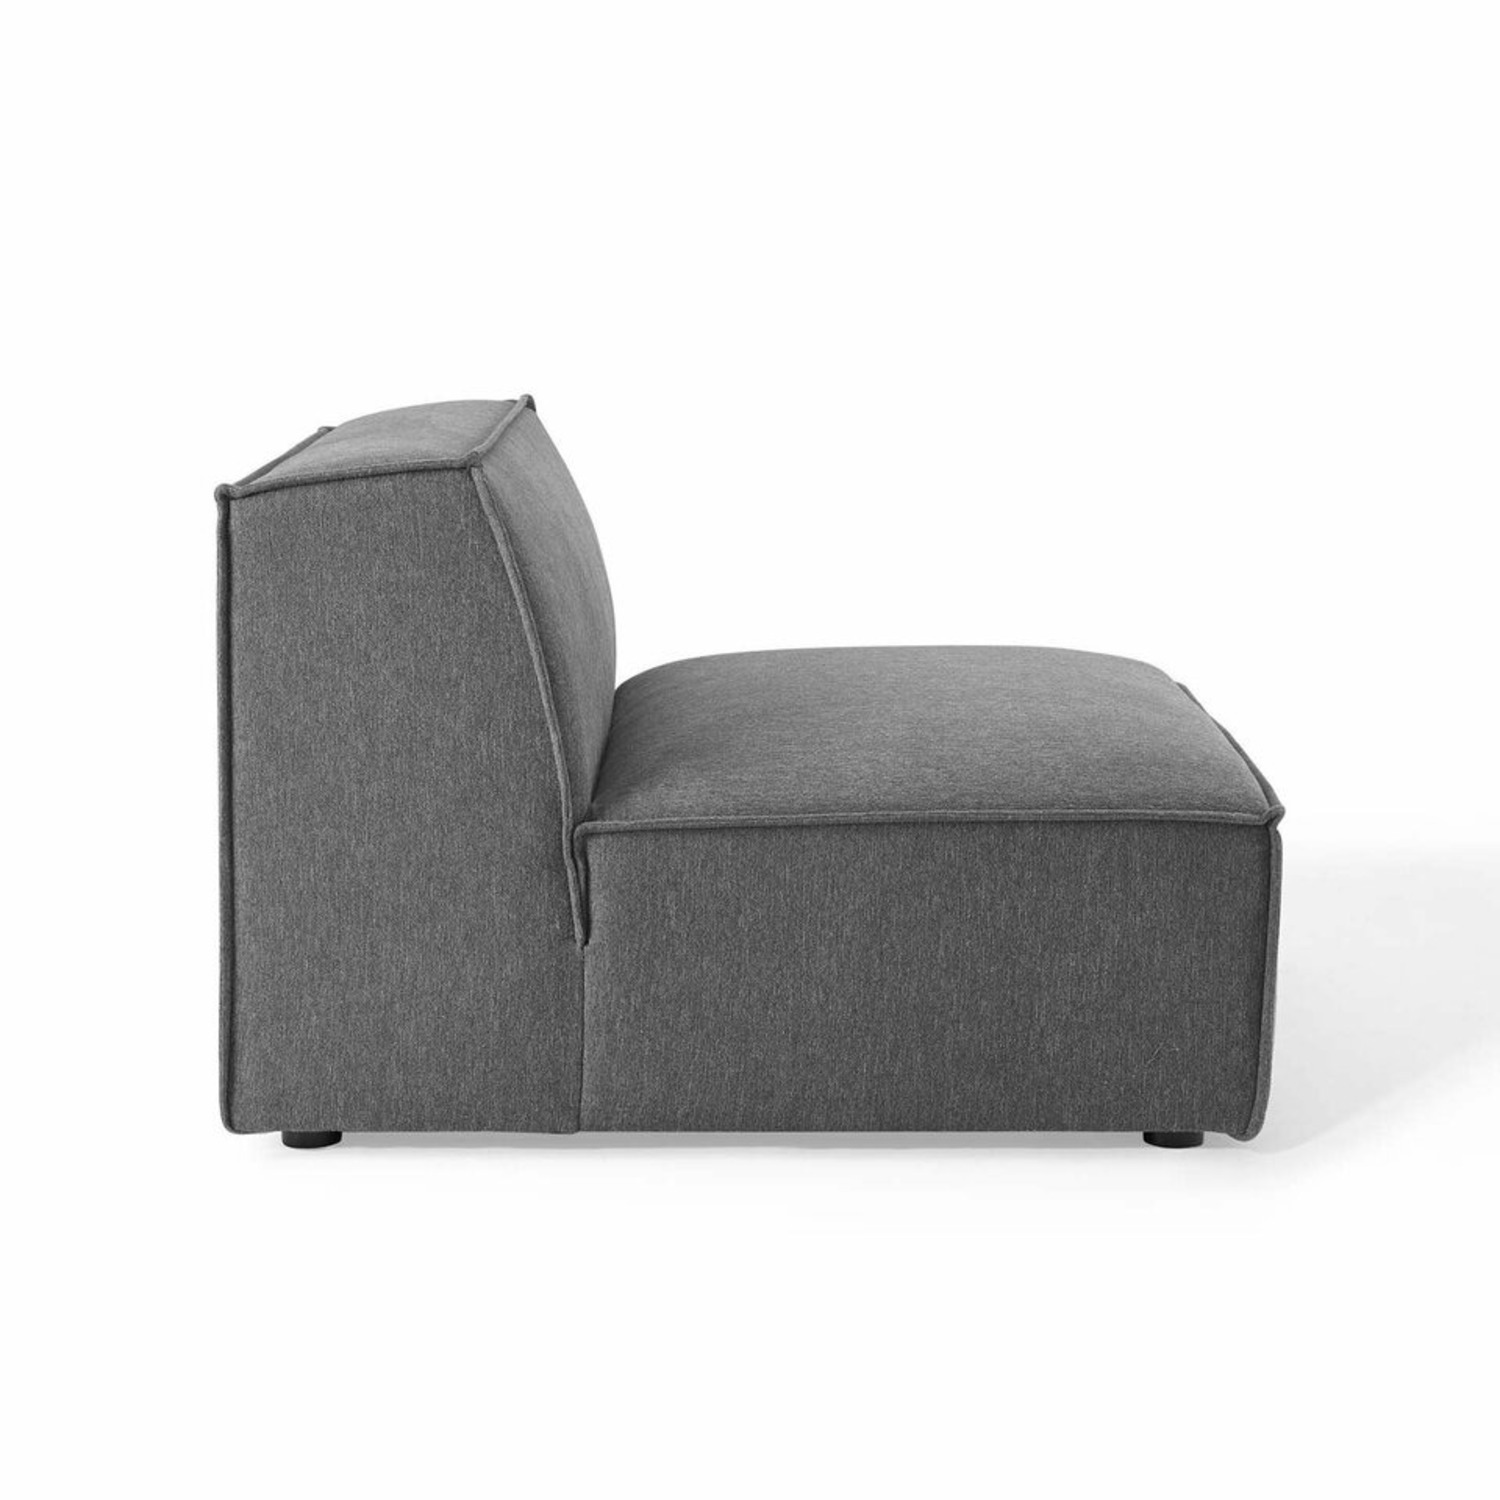 7-Piece Sectional Sofa In Charcoal Upholstery - image-8